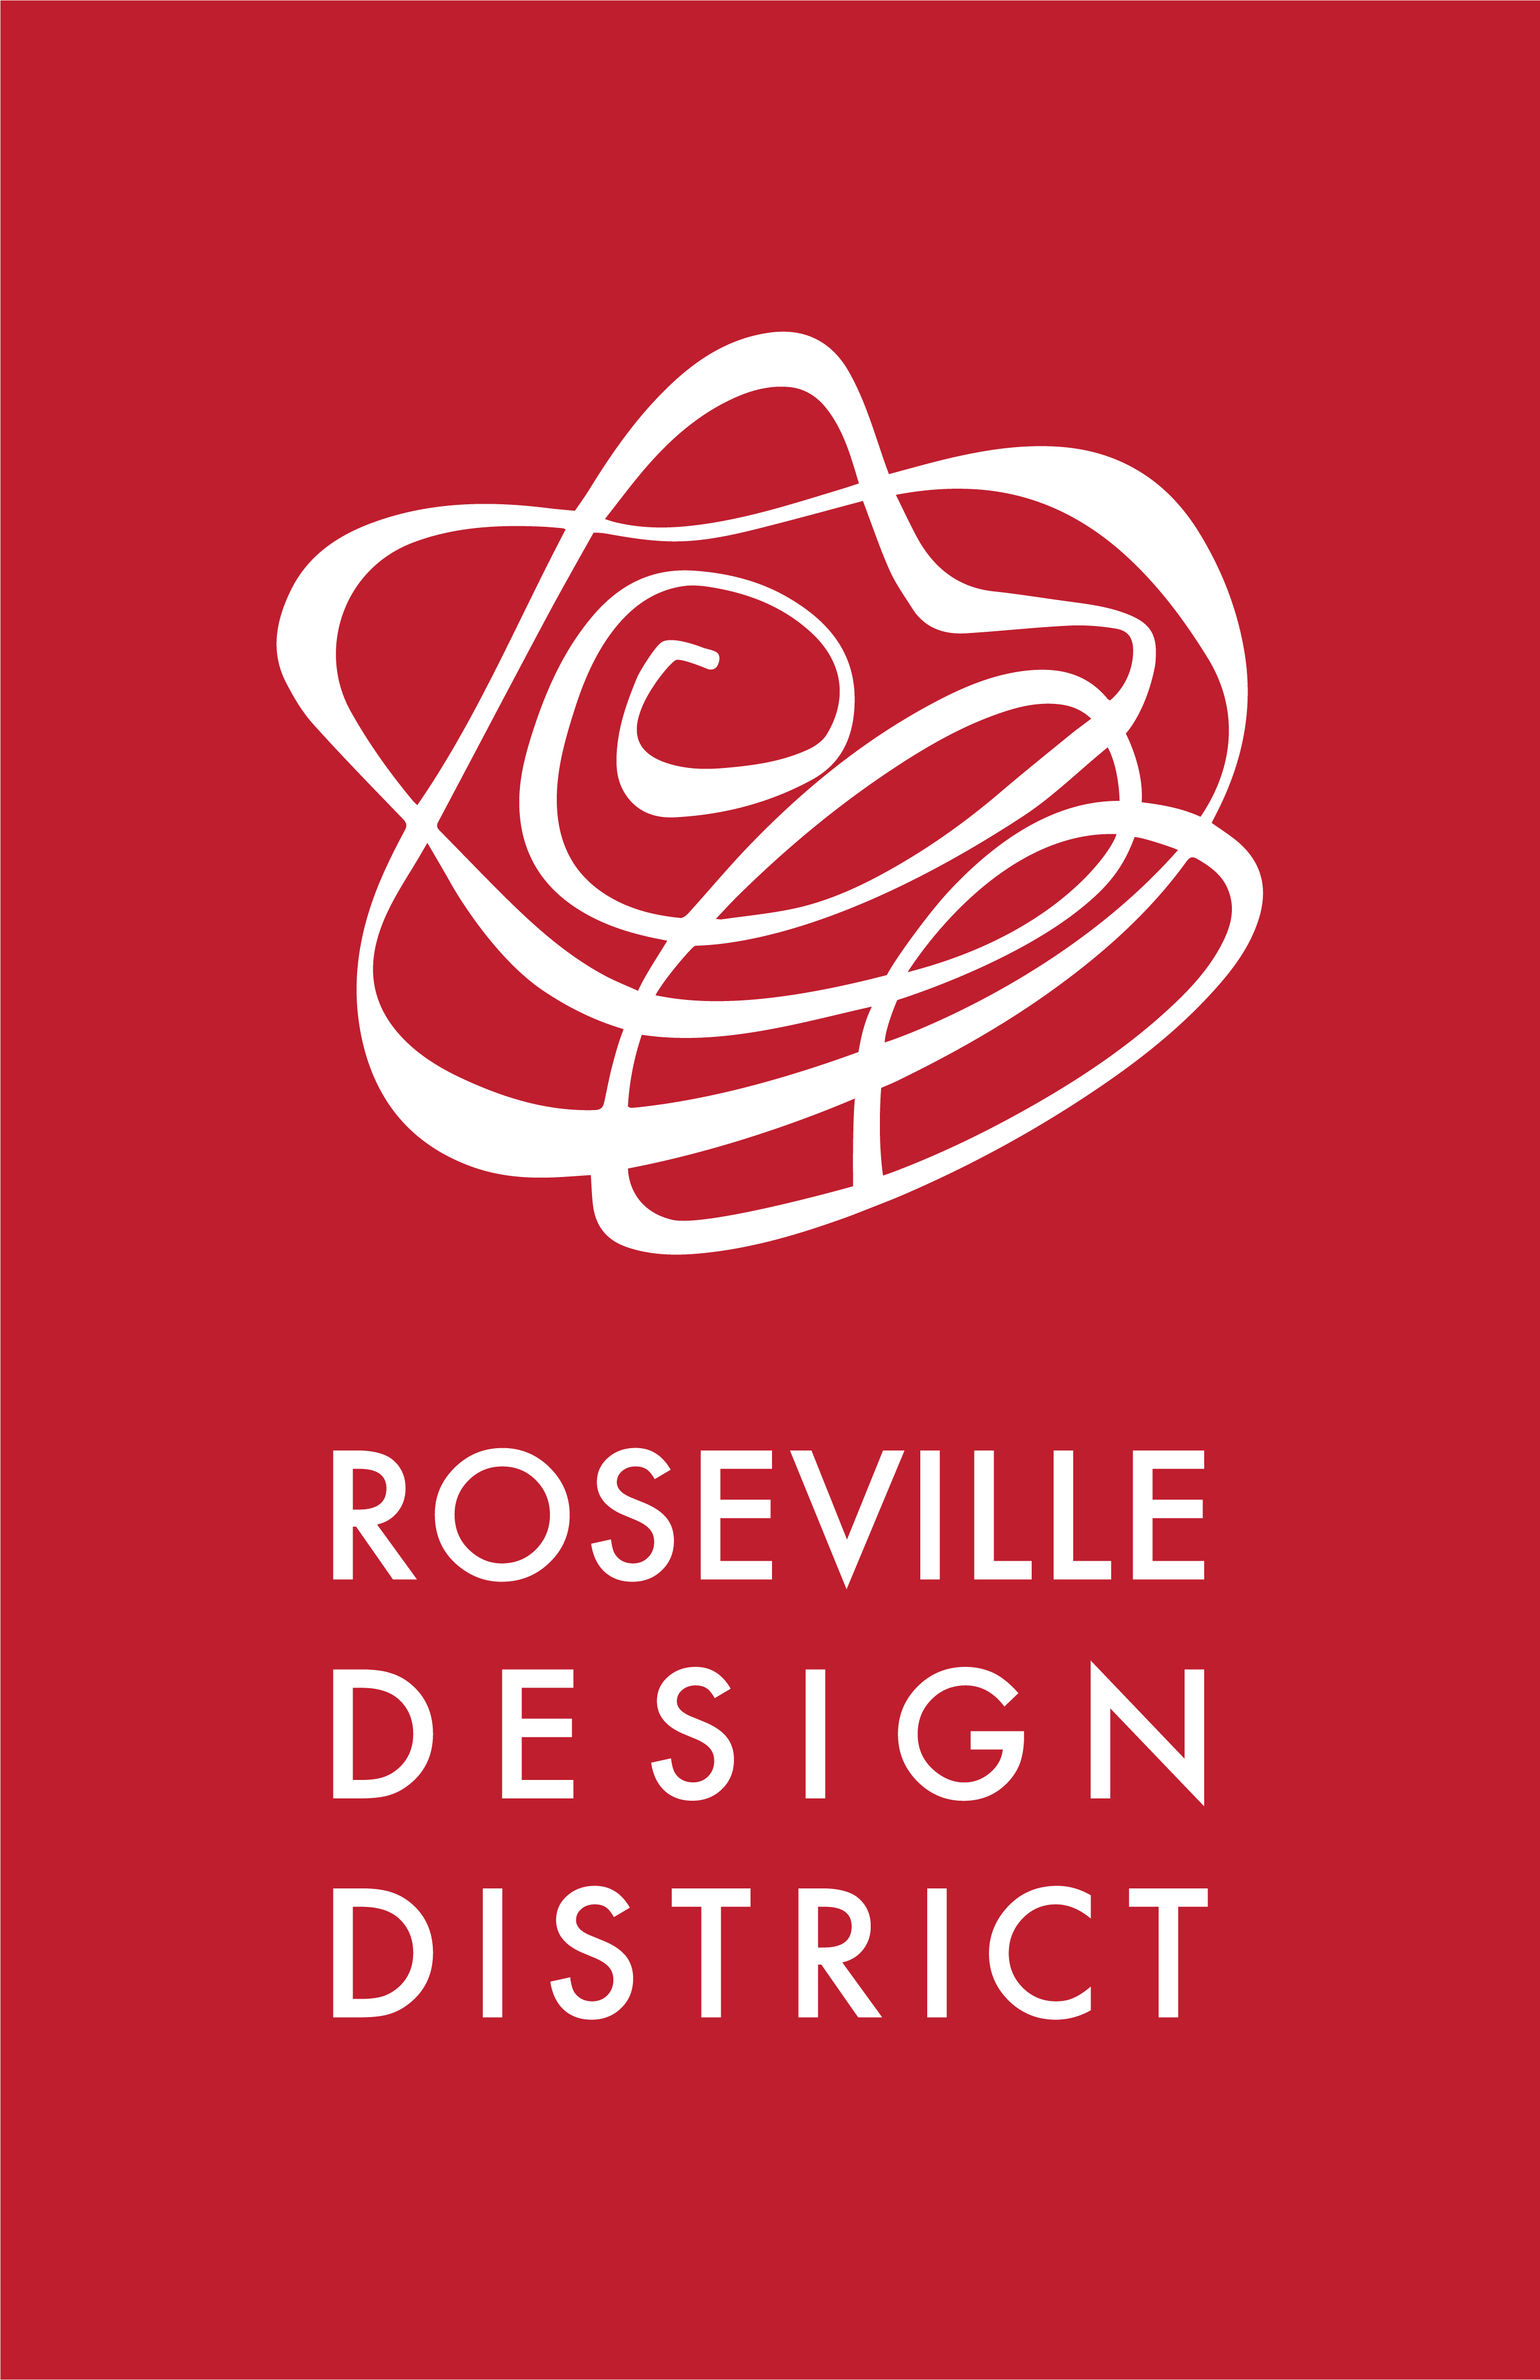 Event Promo Photo For Roseville Design District - Home & Remodeling Fair